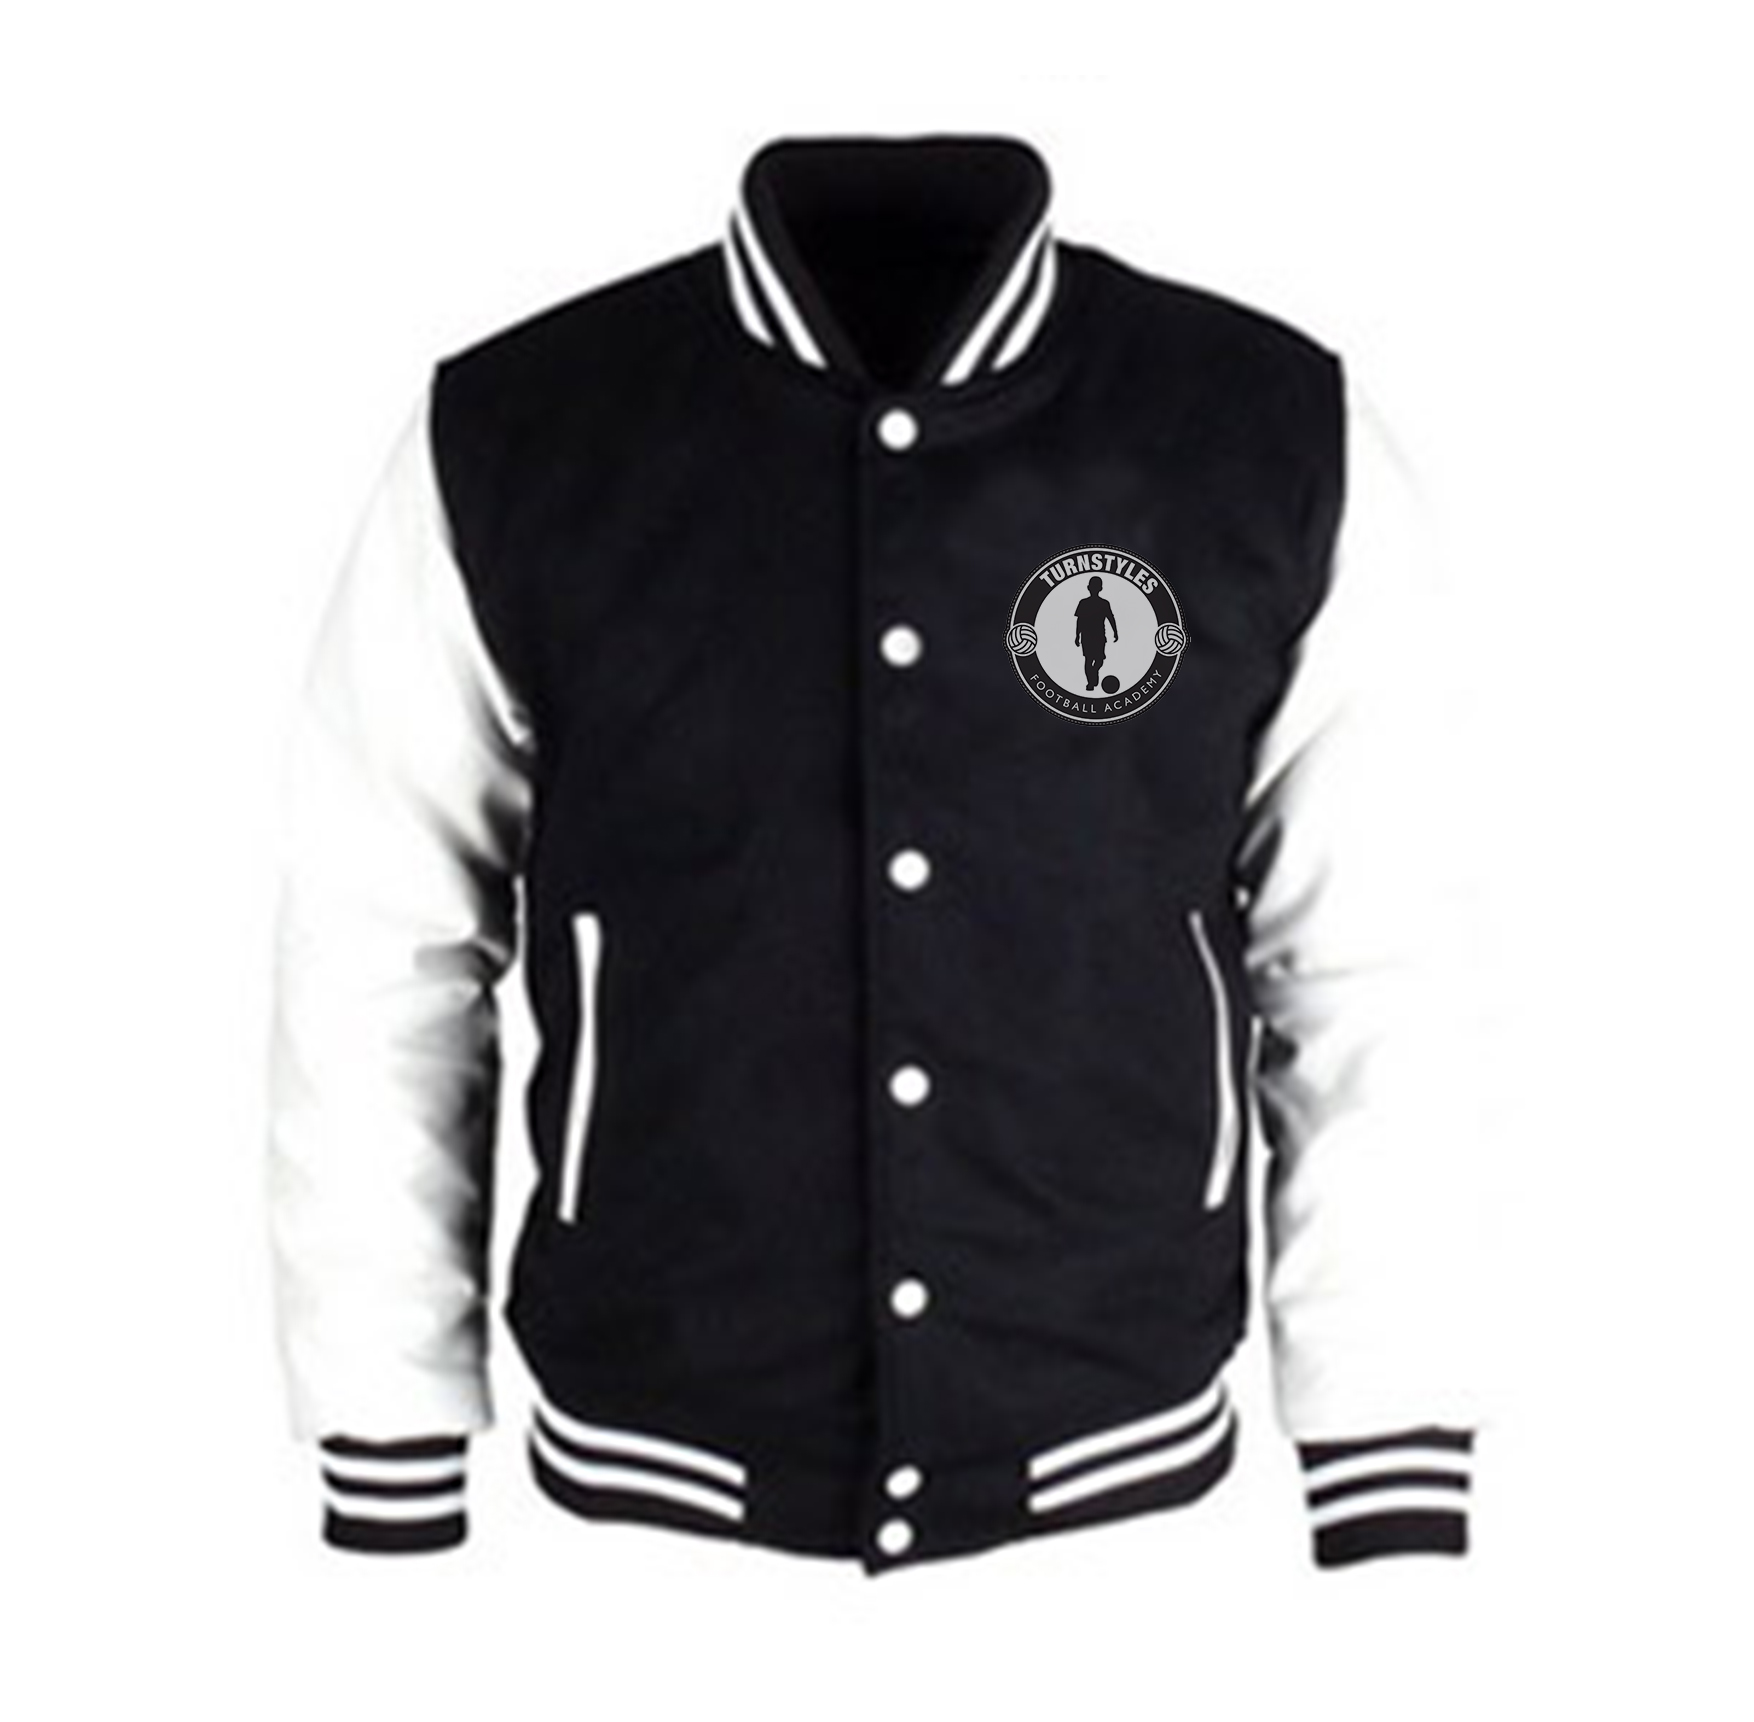 6bcefd4d4a Buy Turnstyles Varsity Jackets for Men and Boys - Turnstyles ...